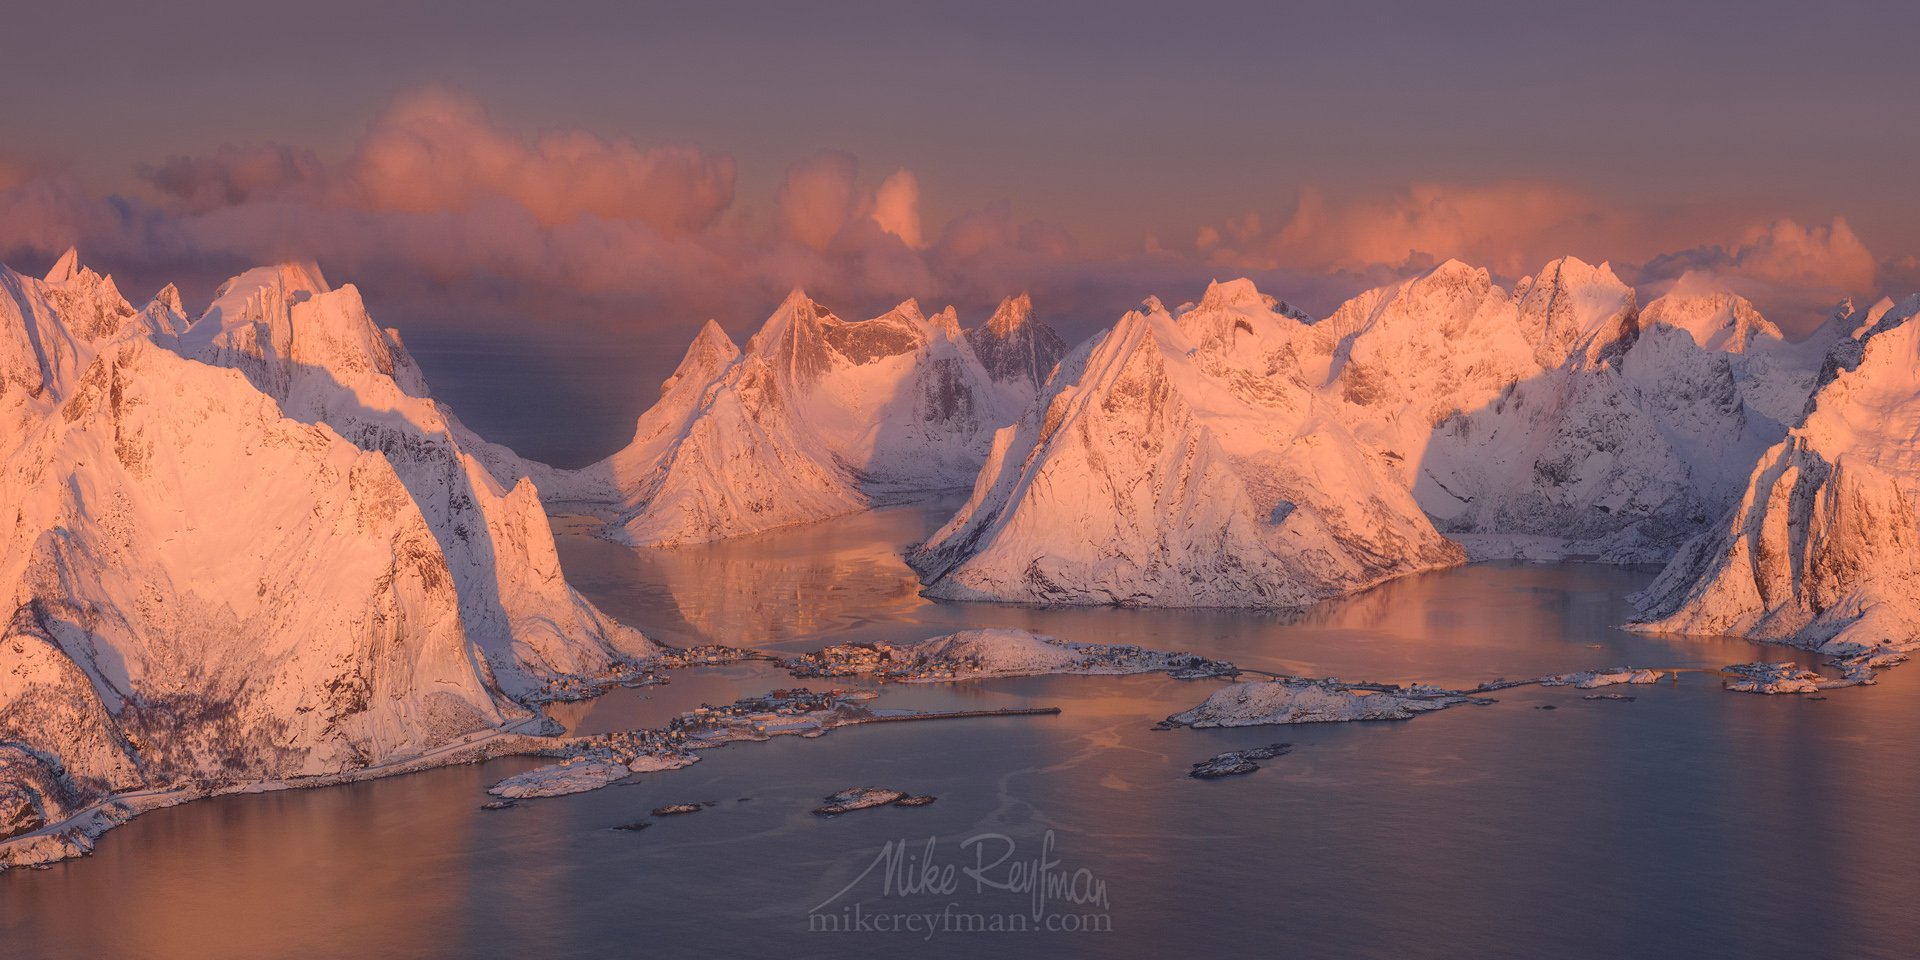 nature, snow, winter, photography, sky, mountain, norway, horizontal, frozen, outdoors, lofoten, color image, mountain range, scenic, tranquility, cold temperature, snow-capped mountainс, cloud - sky, aerial, Майк Рейфман